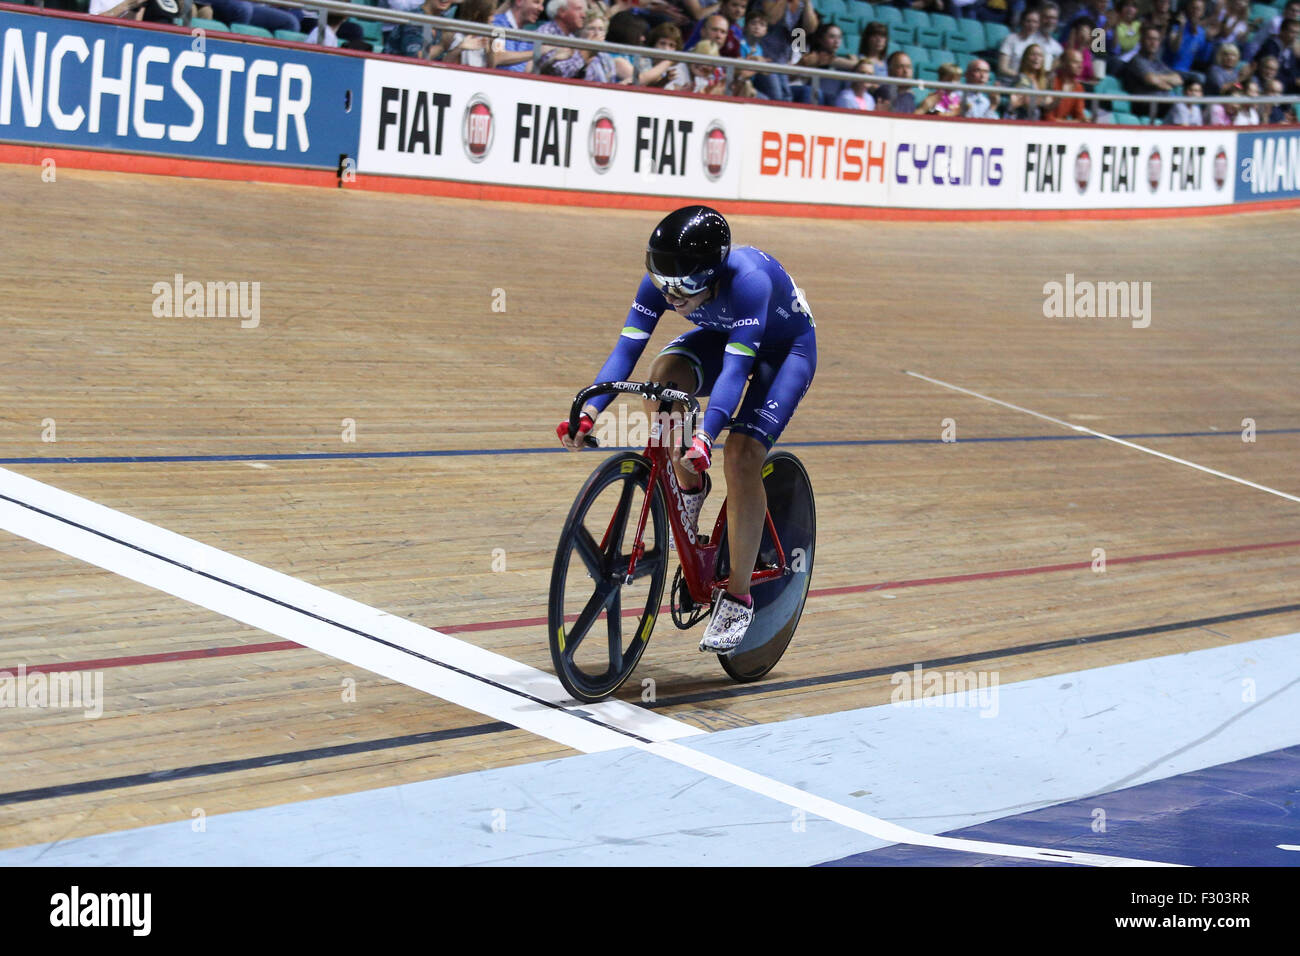 Manchester, UK, 26th Sep, 2015. Laura Trott crosses the line to win the final of the Women's Scratch at the 2015 Stock Photo